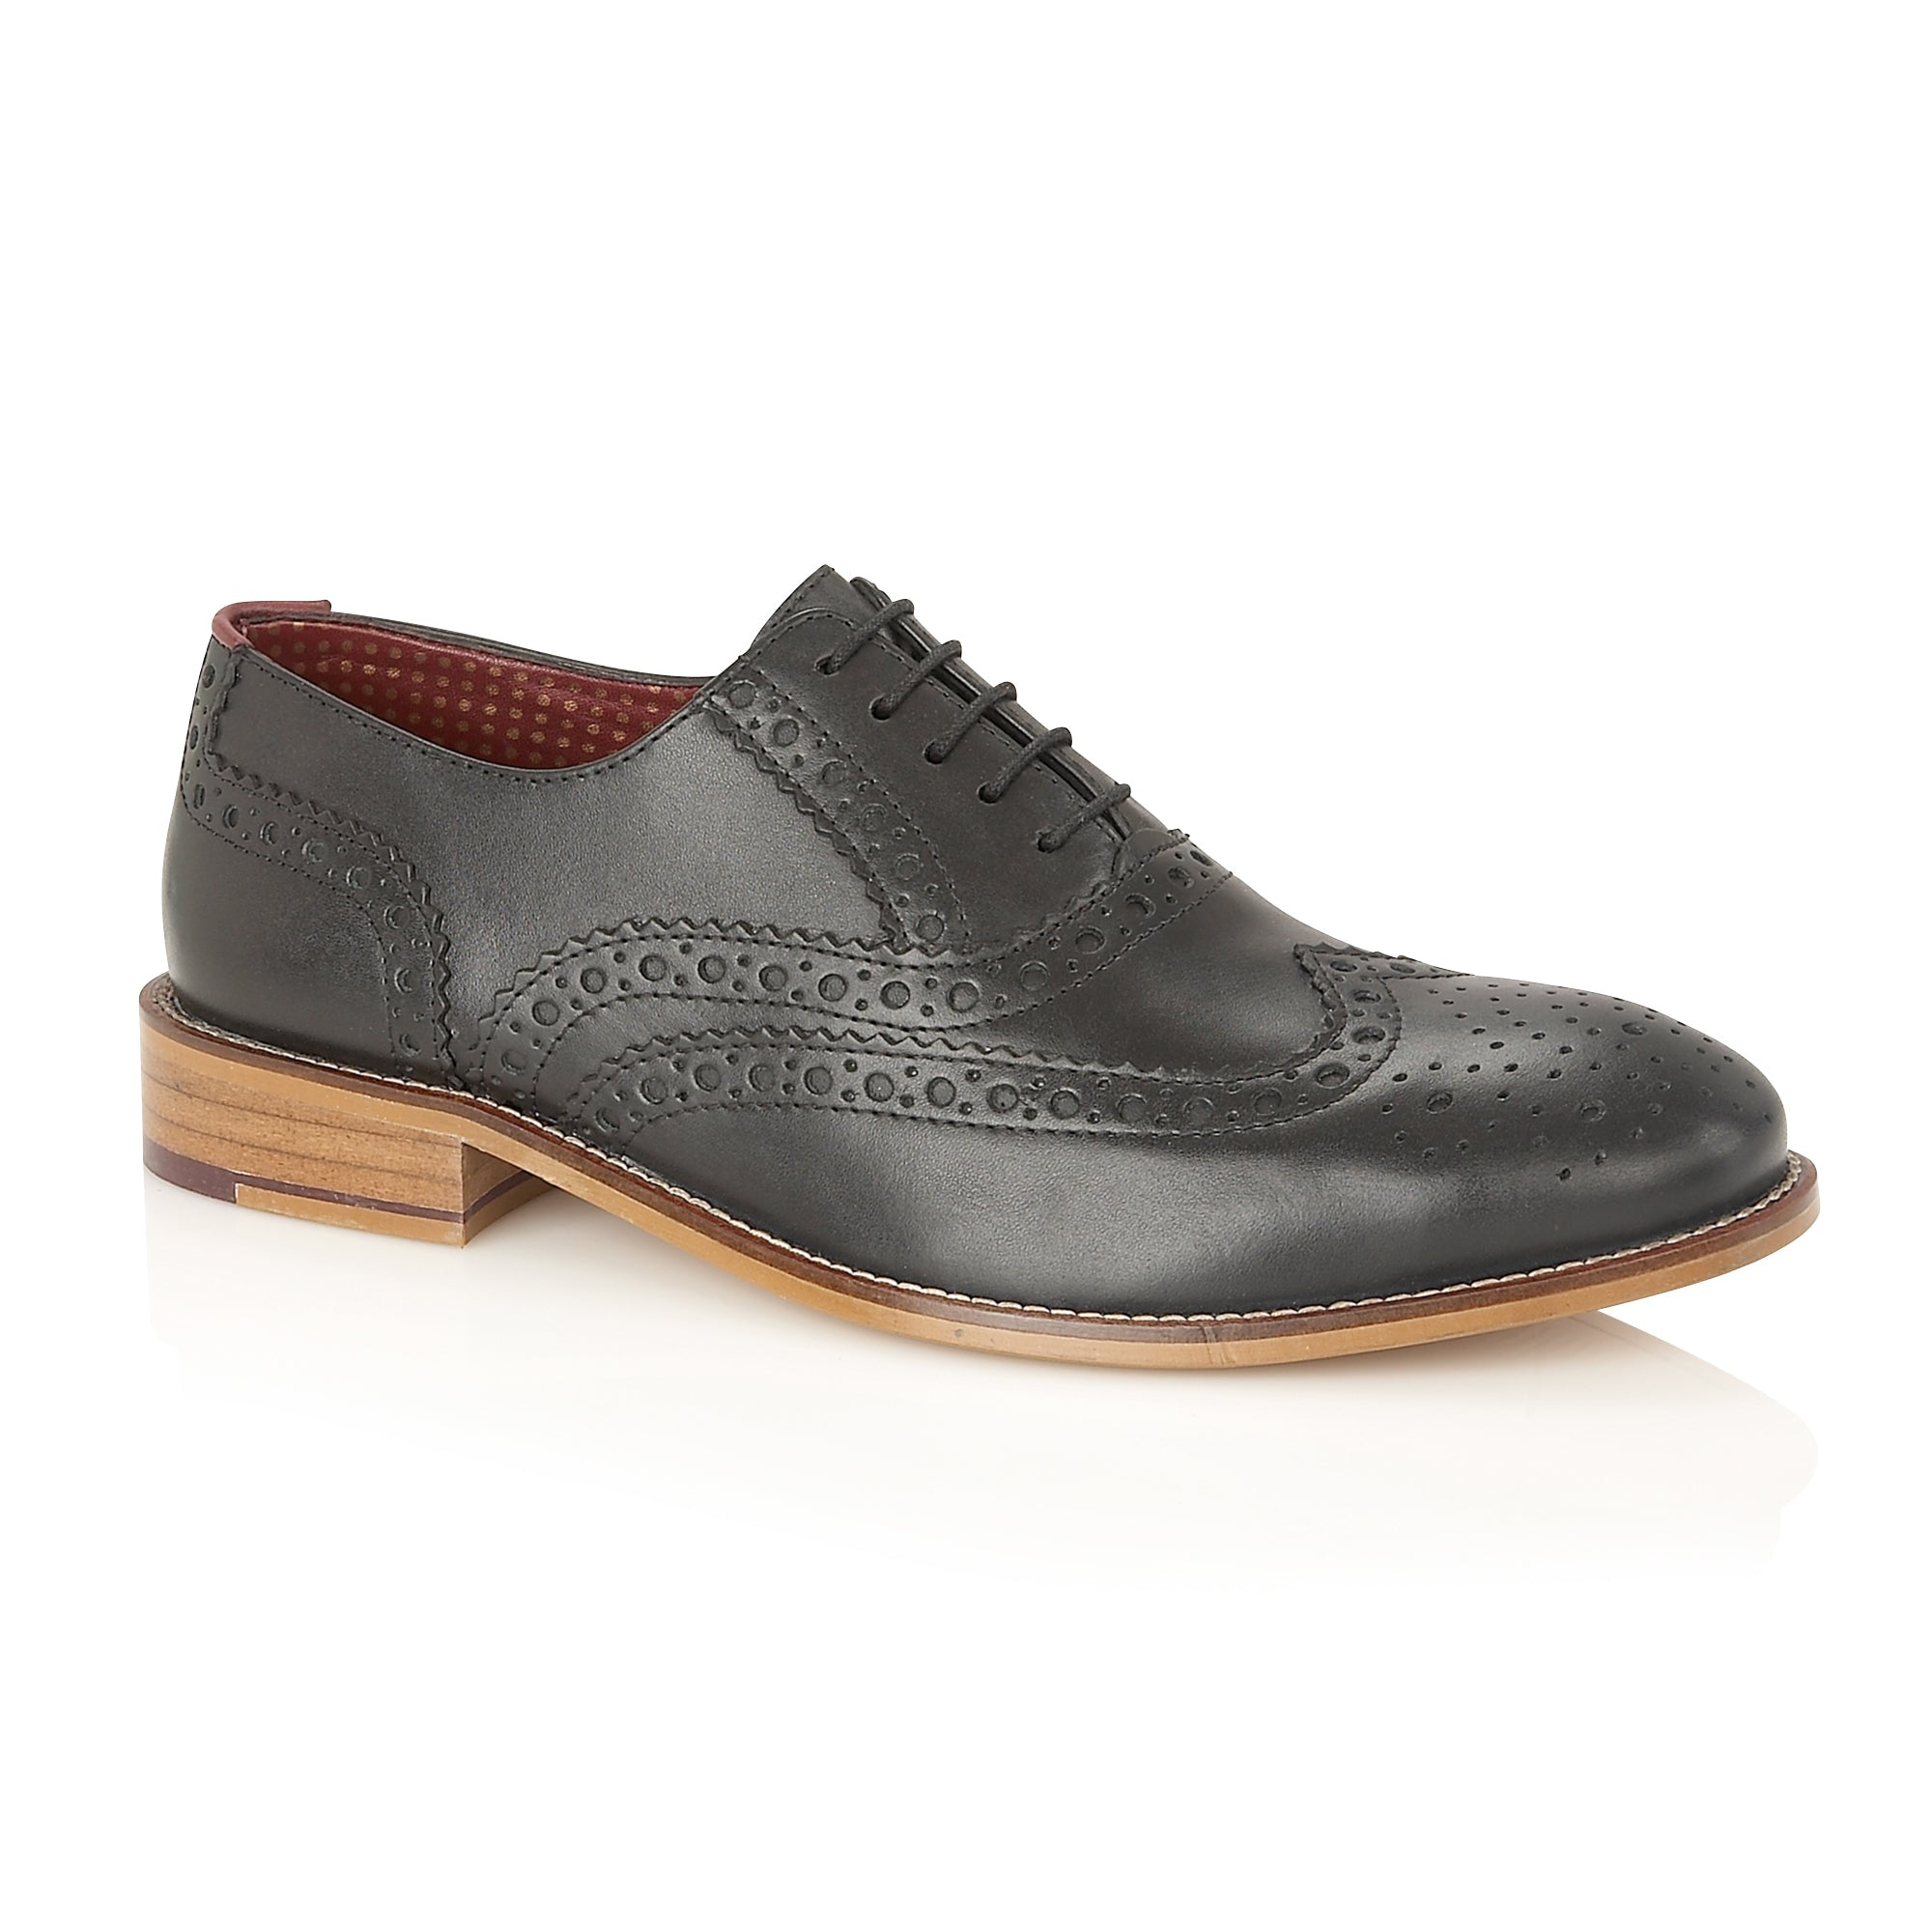 Gatsby Leather Brogue Black, Shoes, London Brogues  - London Brogues